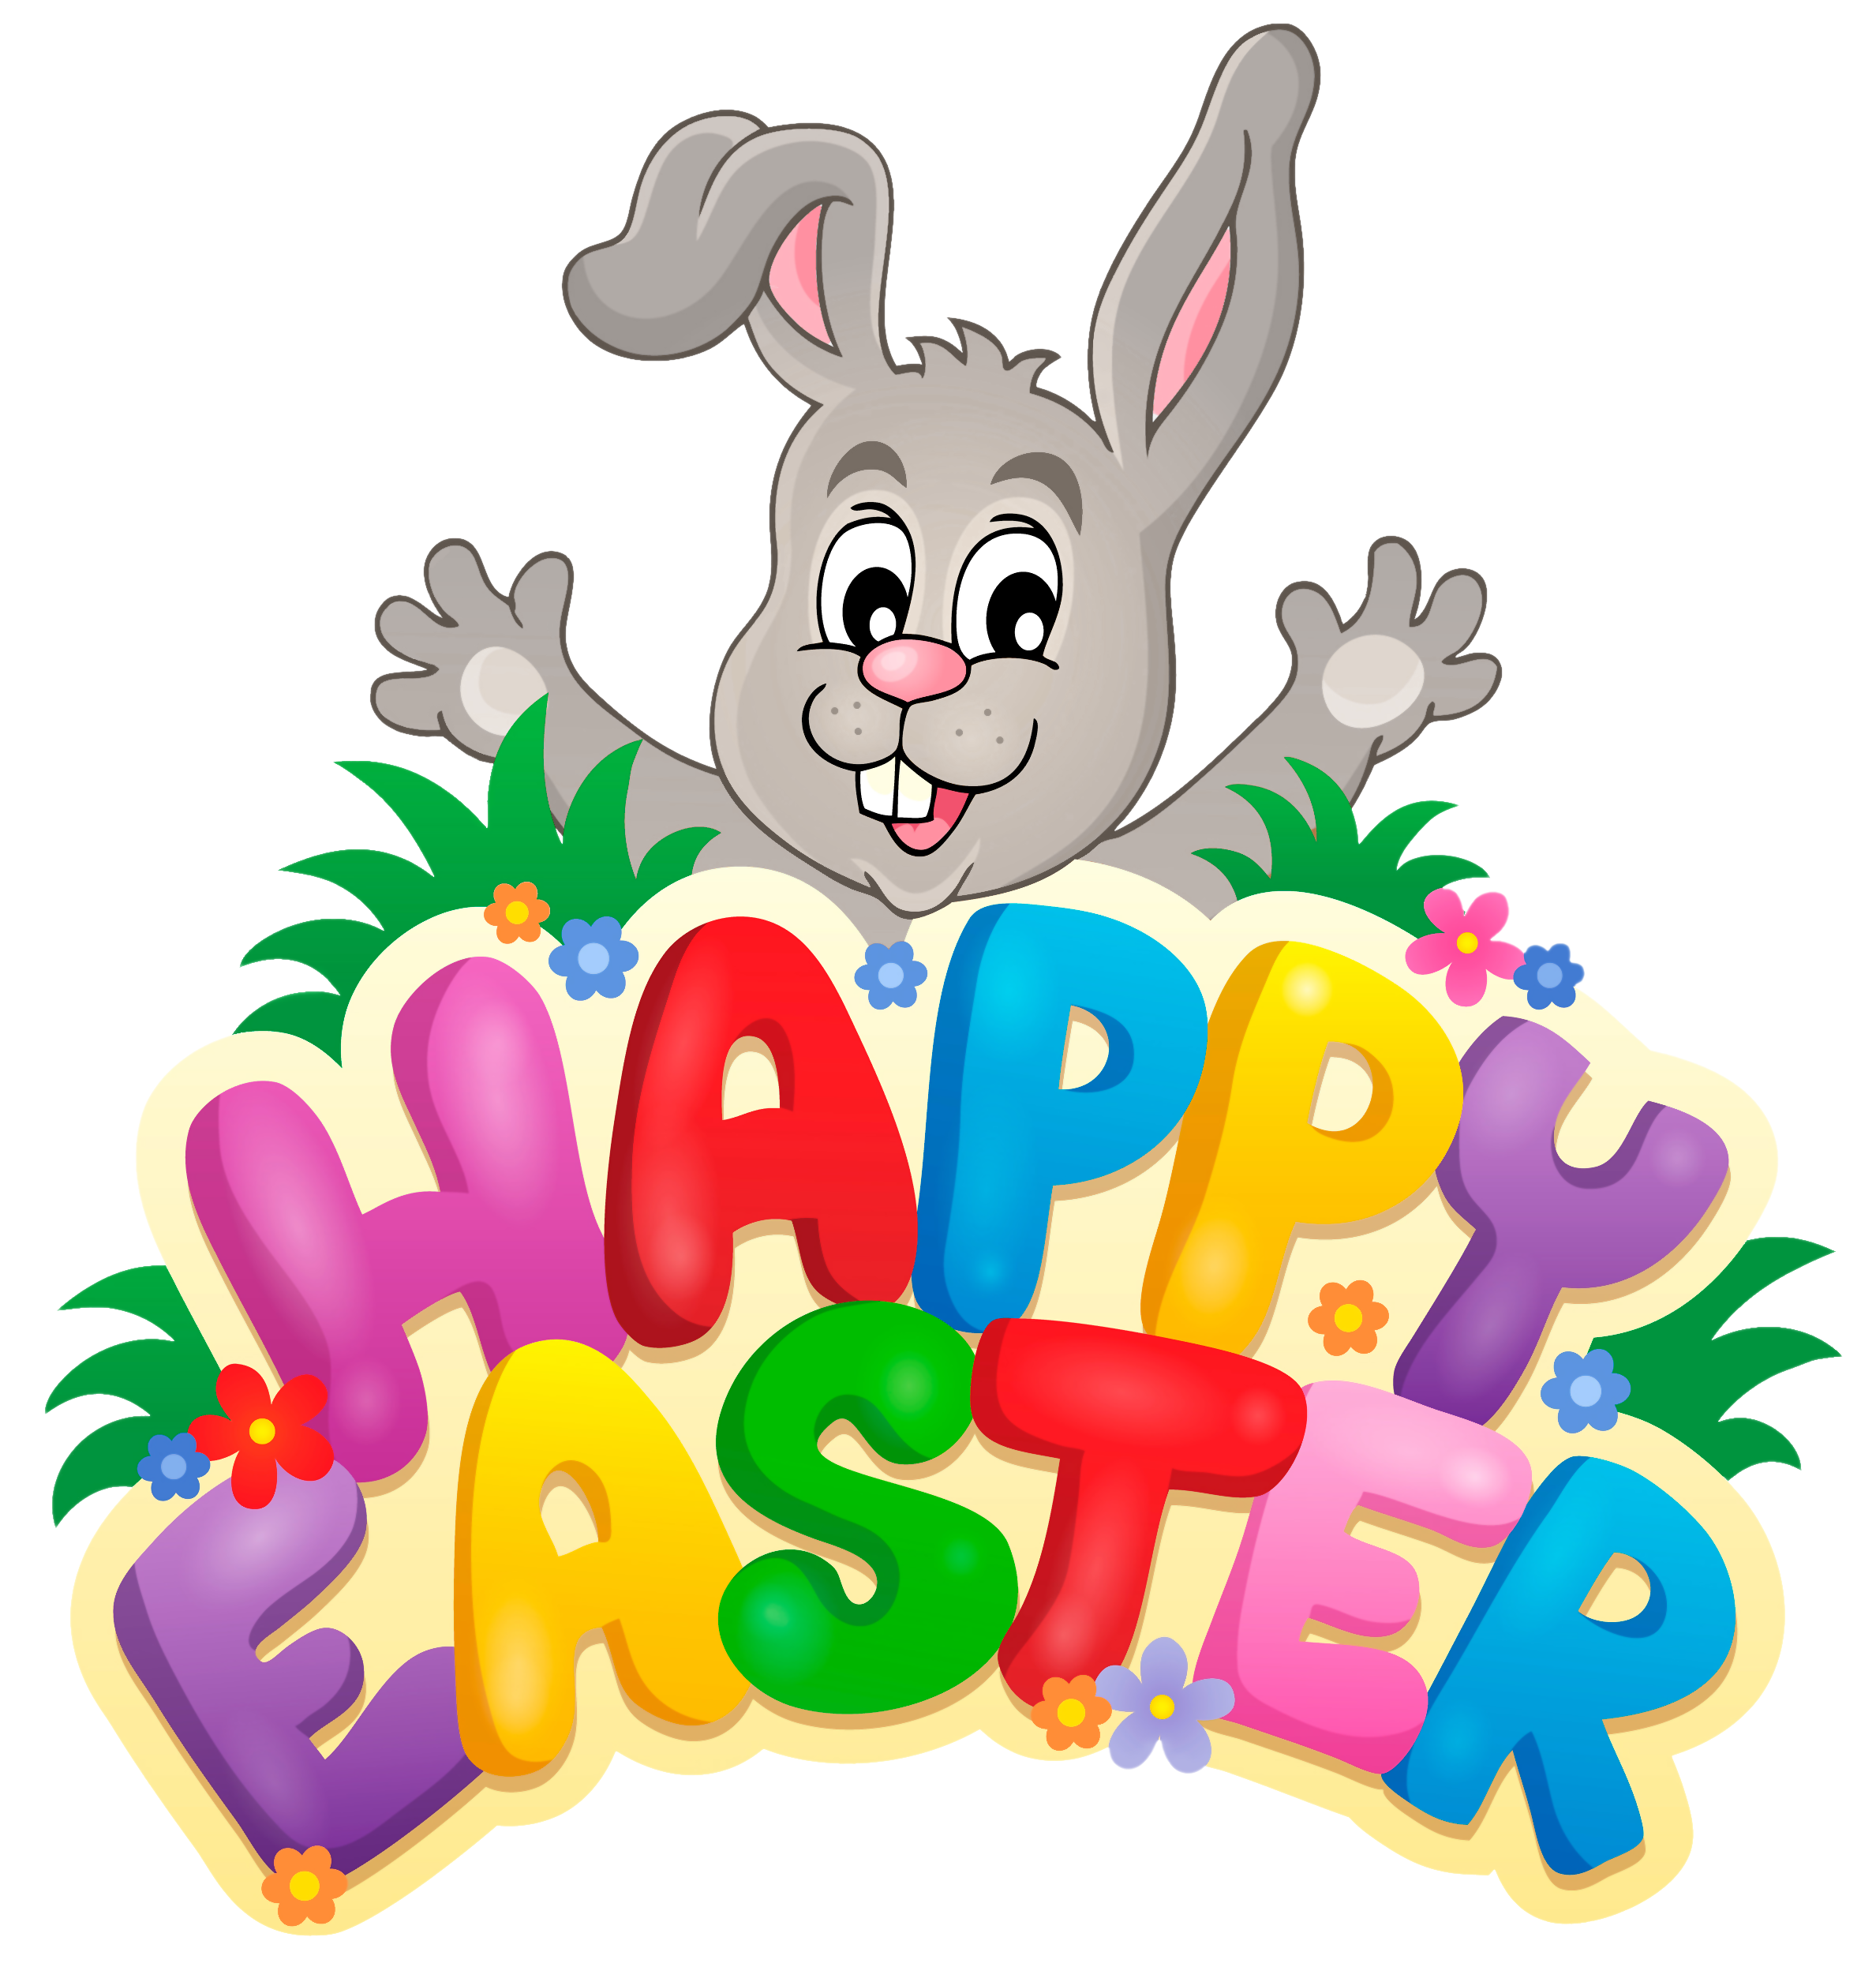 Happy Easter 2021 Wallpapers Wallpaper Cave